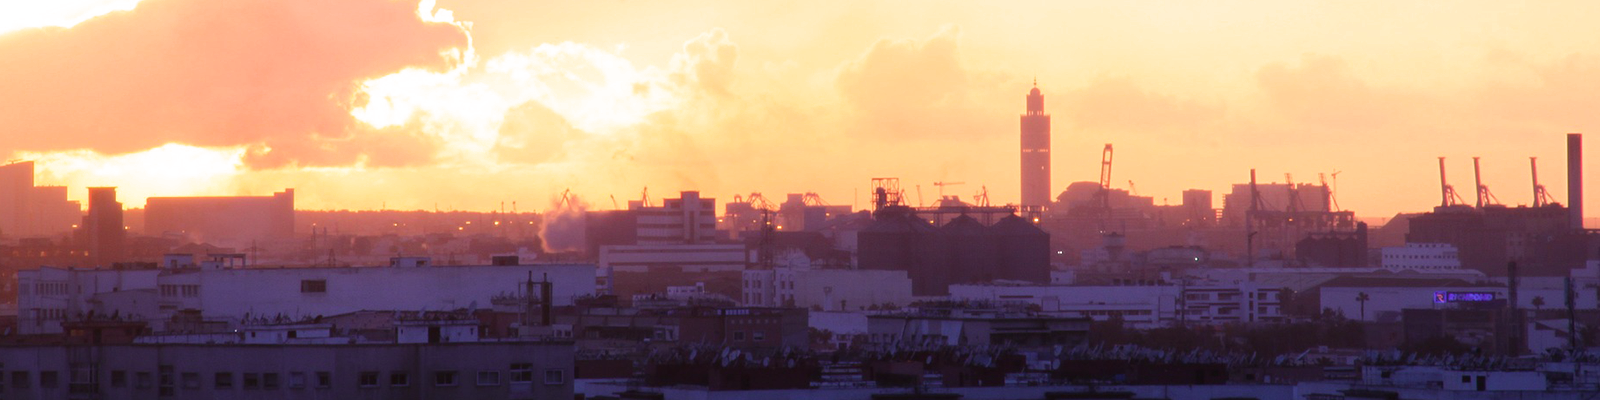 Cityscape with sunset view, Casablanca, Morocco